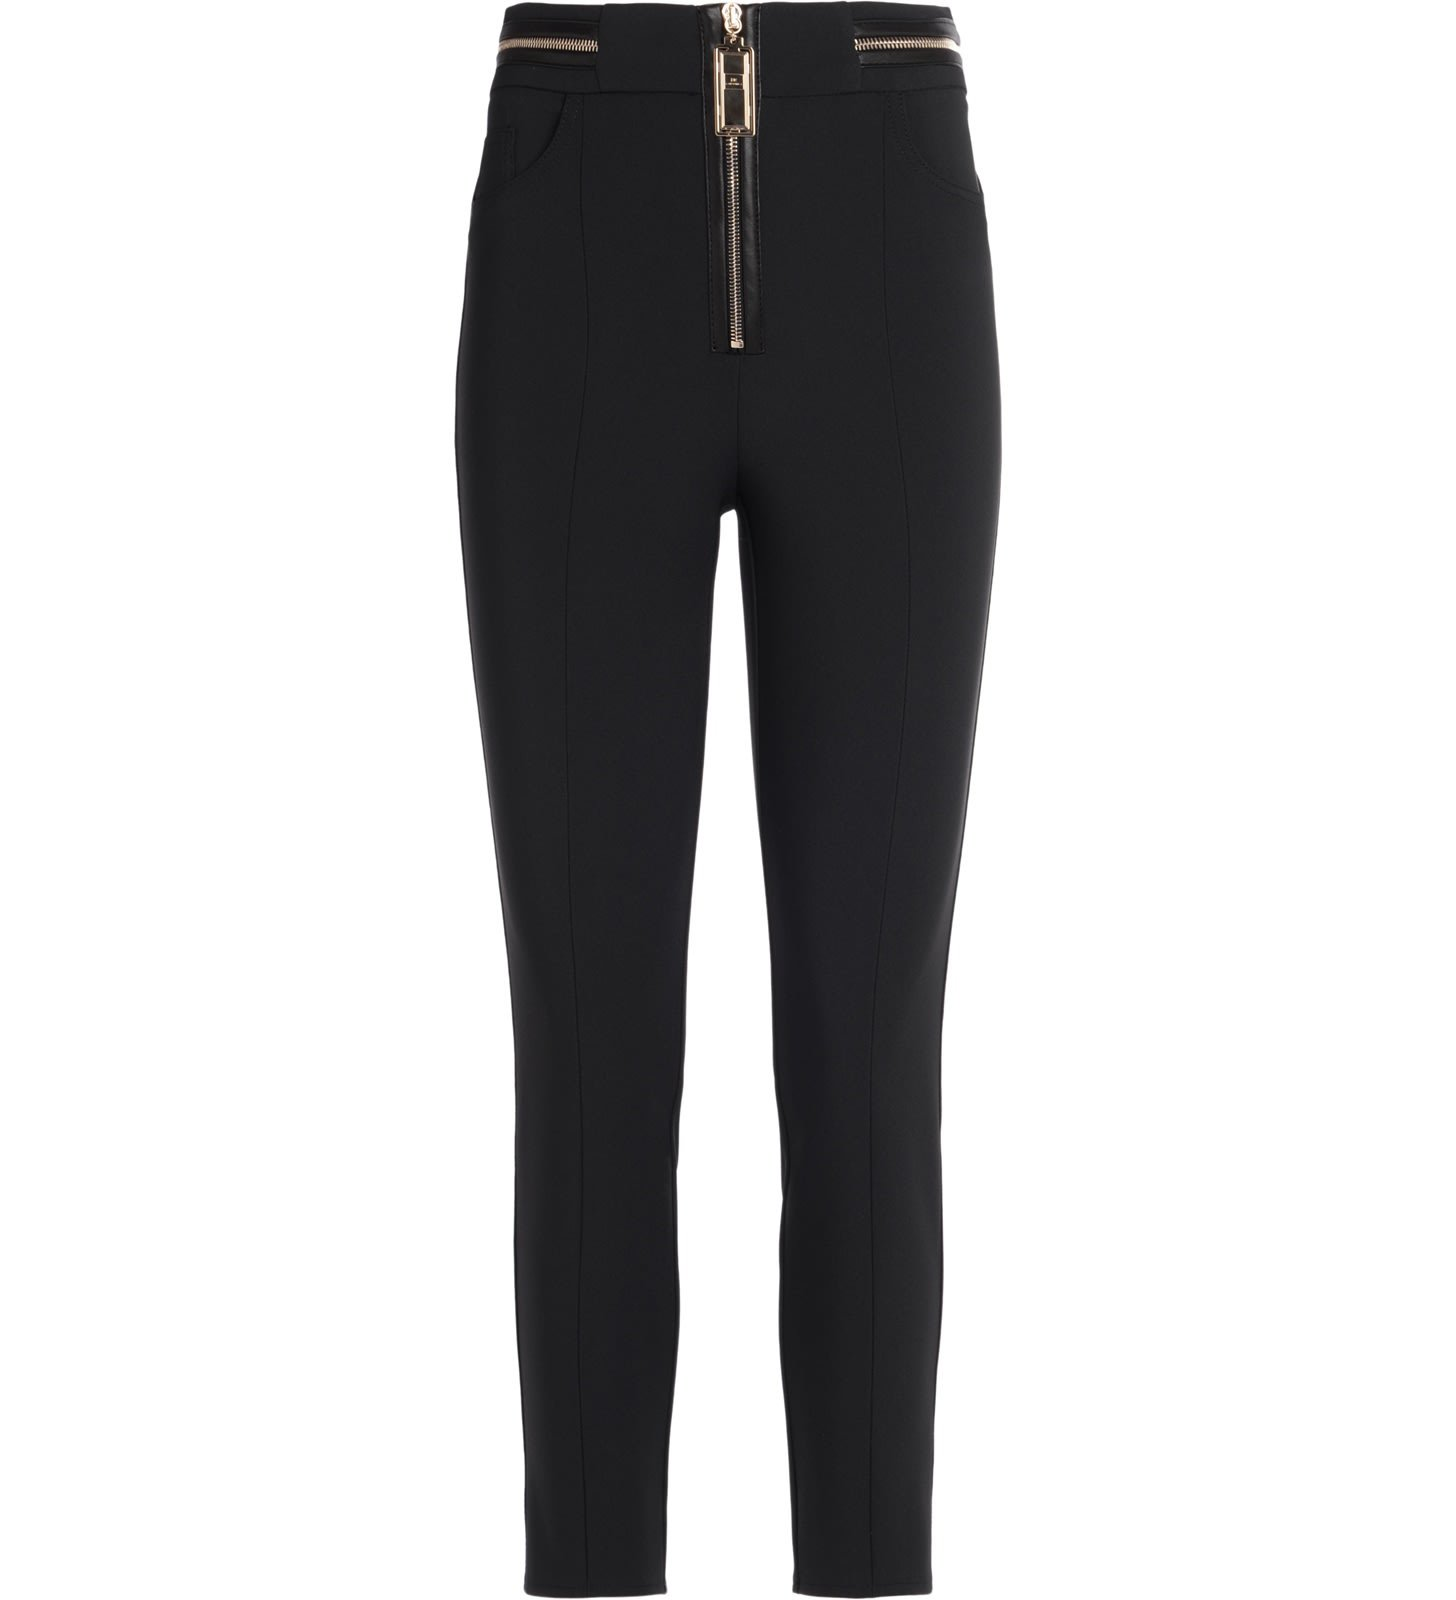 Elisabetta Franchi Tight-fitting Black Trousers With Front Zip